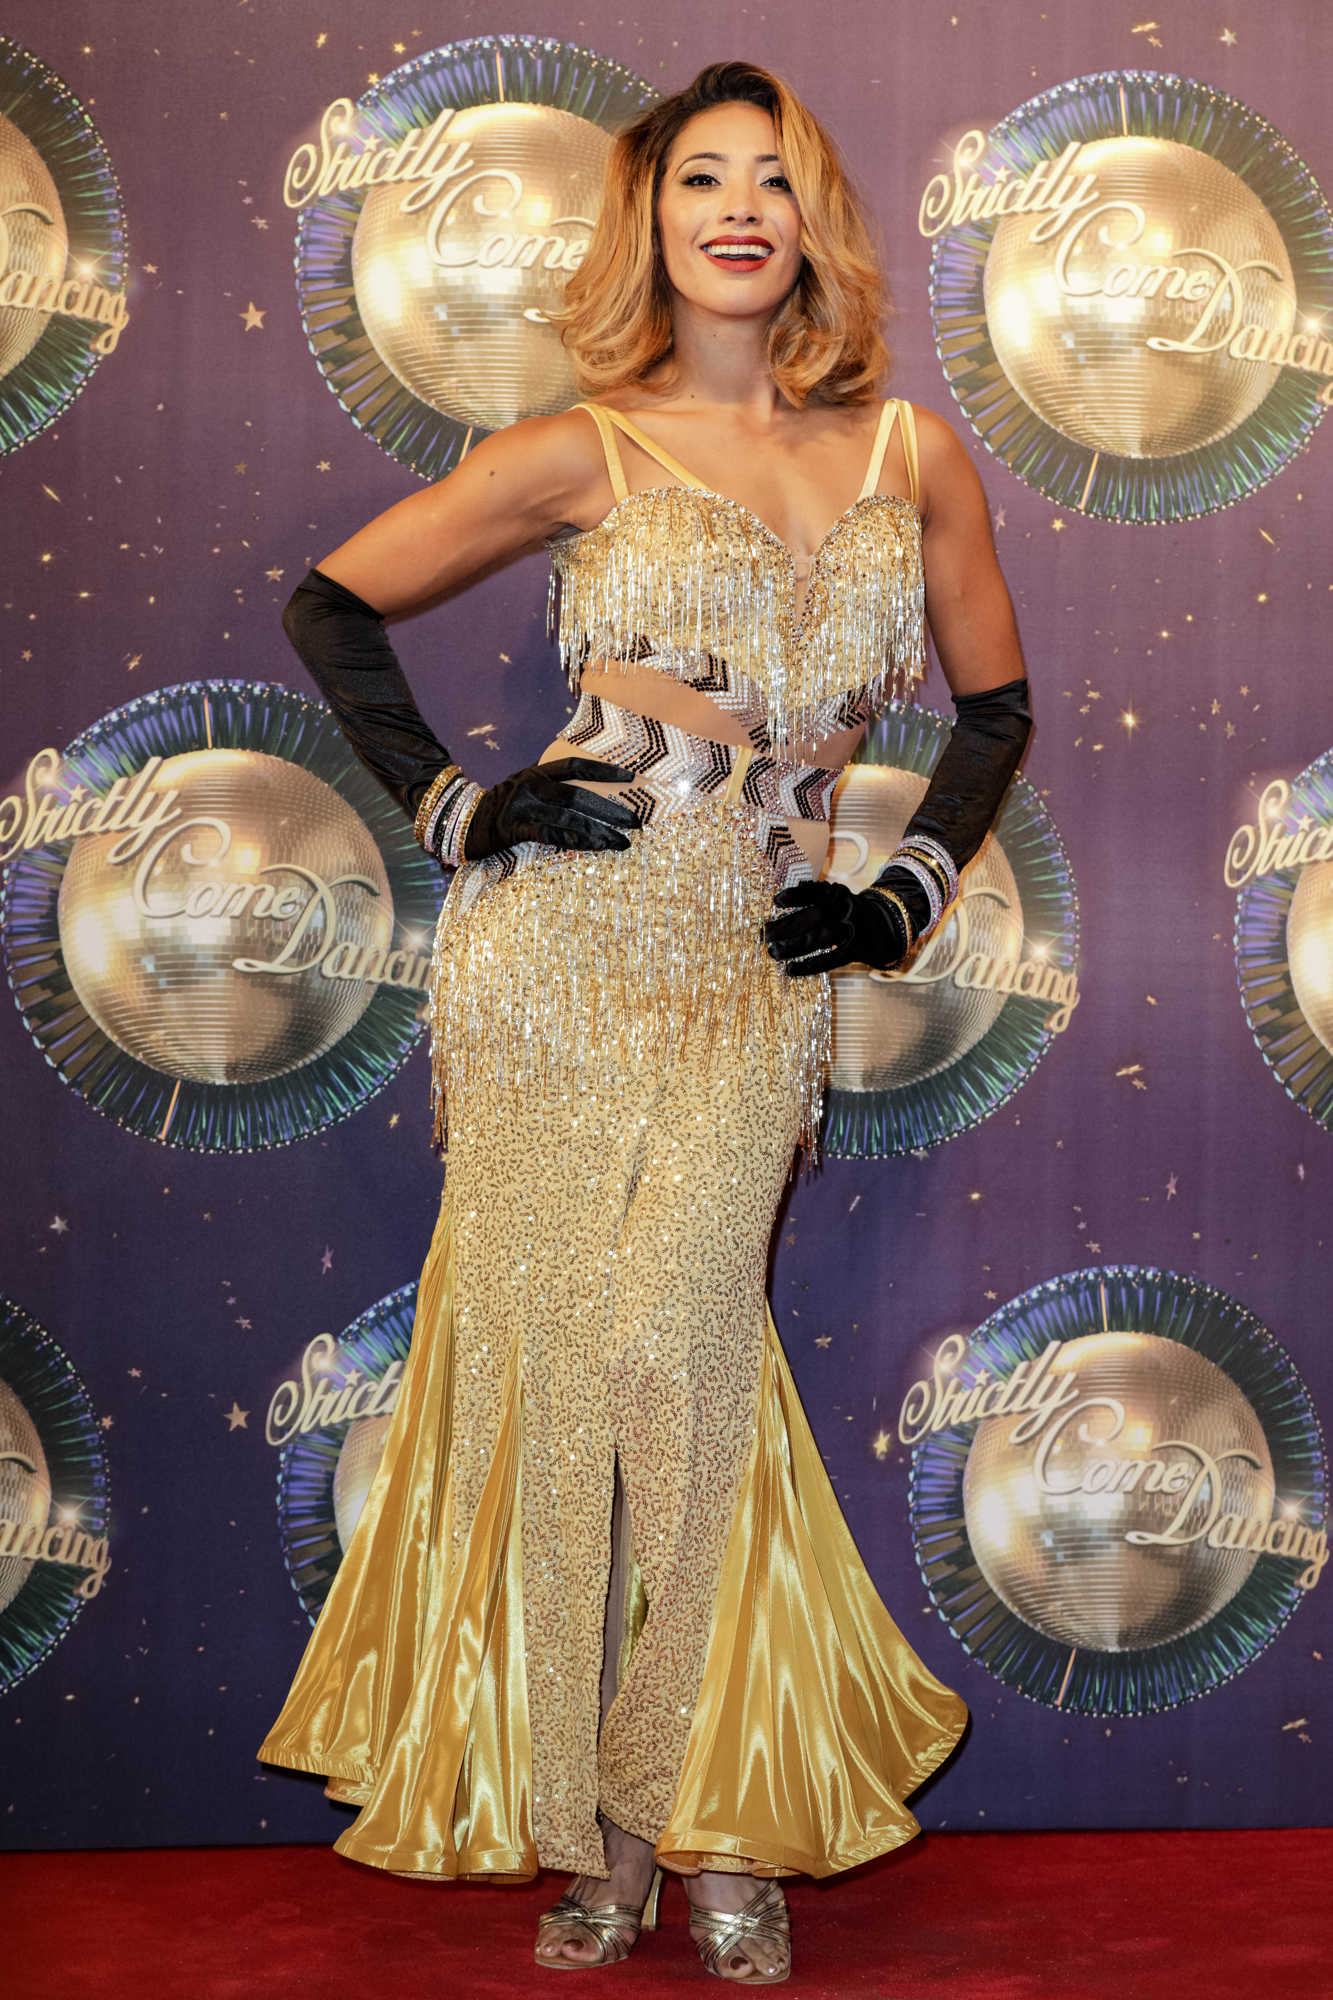 PHT_B5327_strictly_come_dancing_14111.JPG